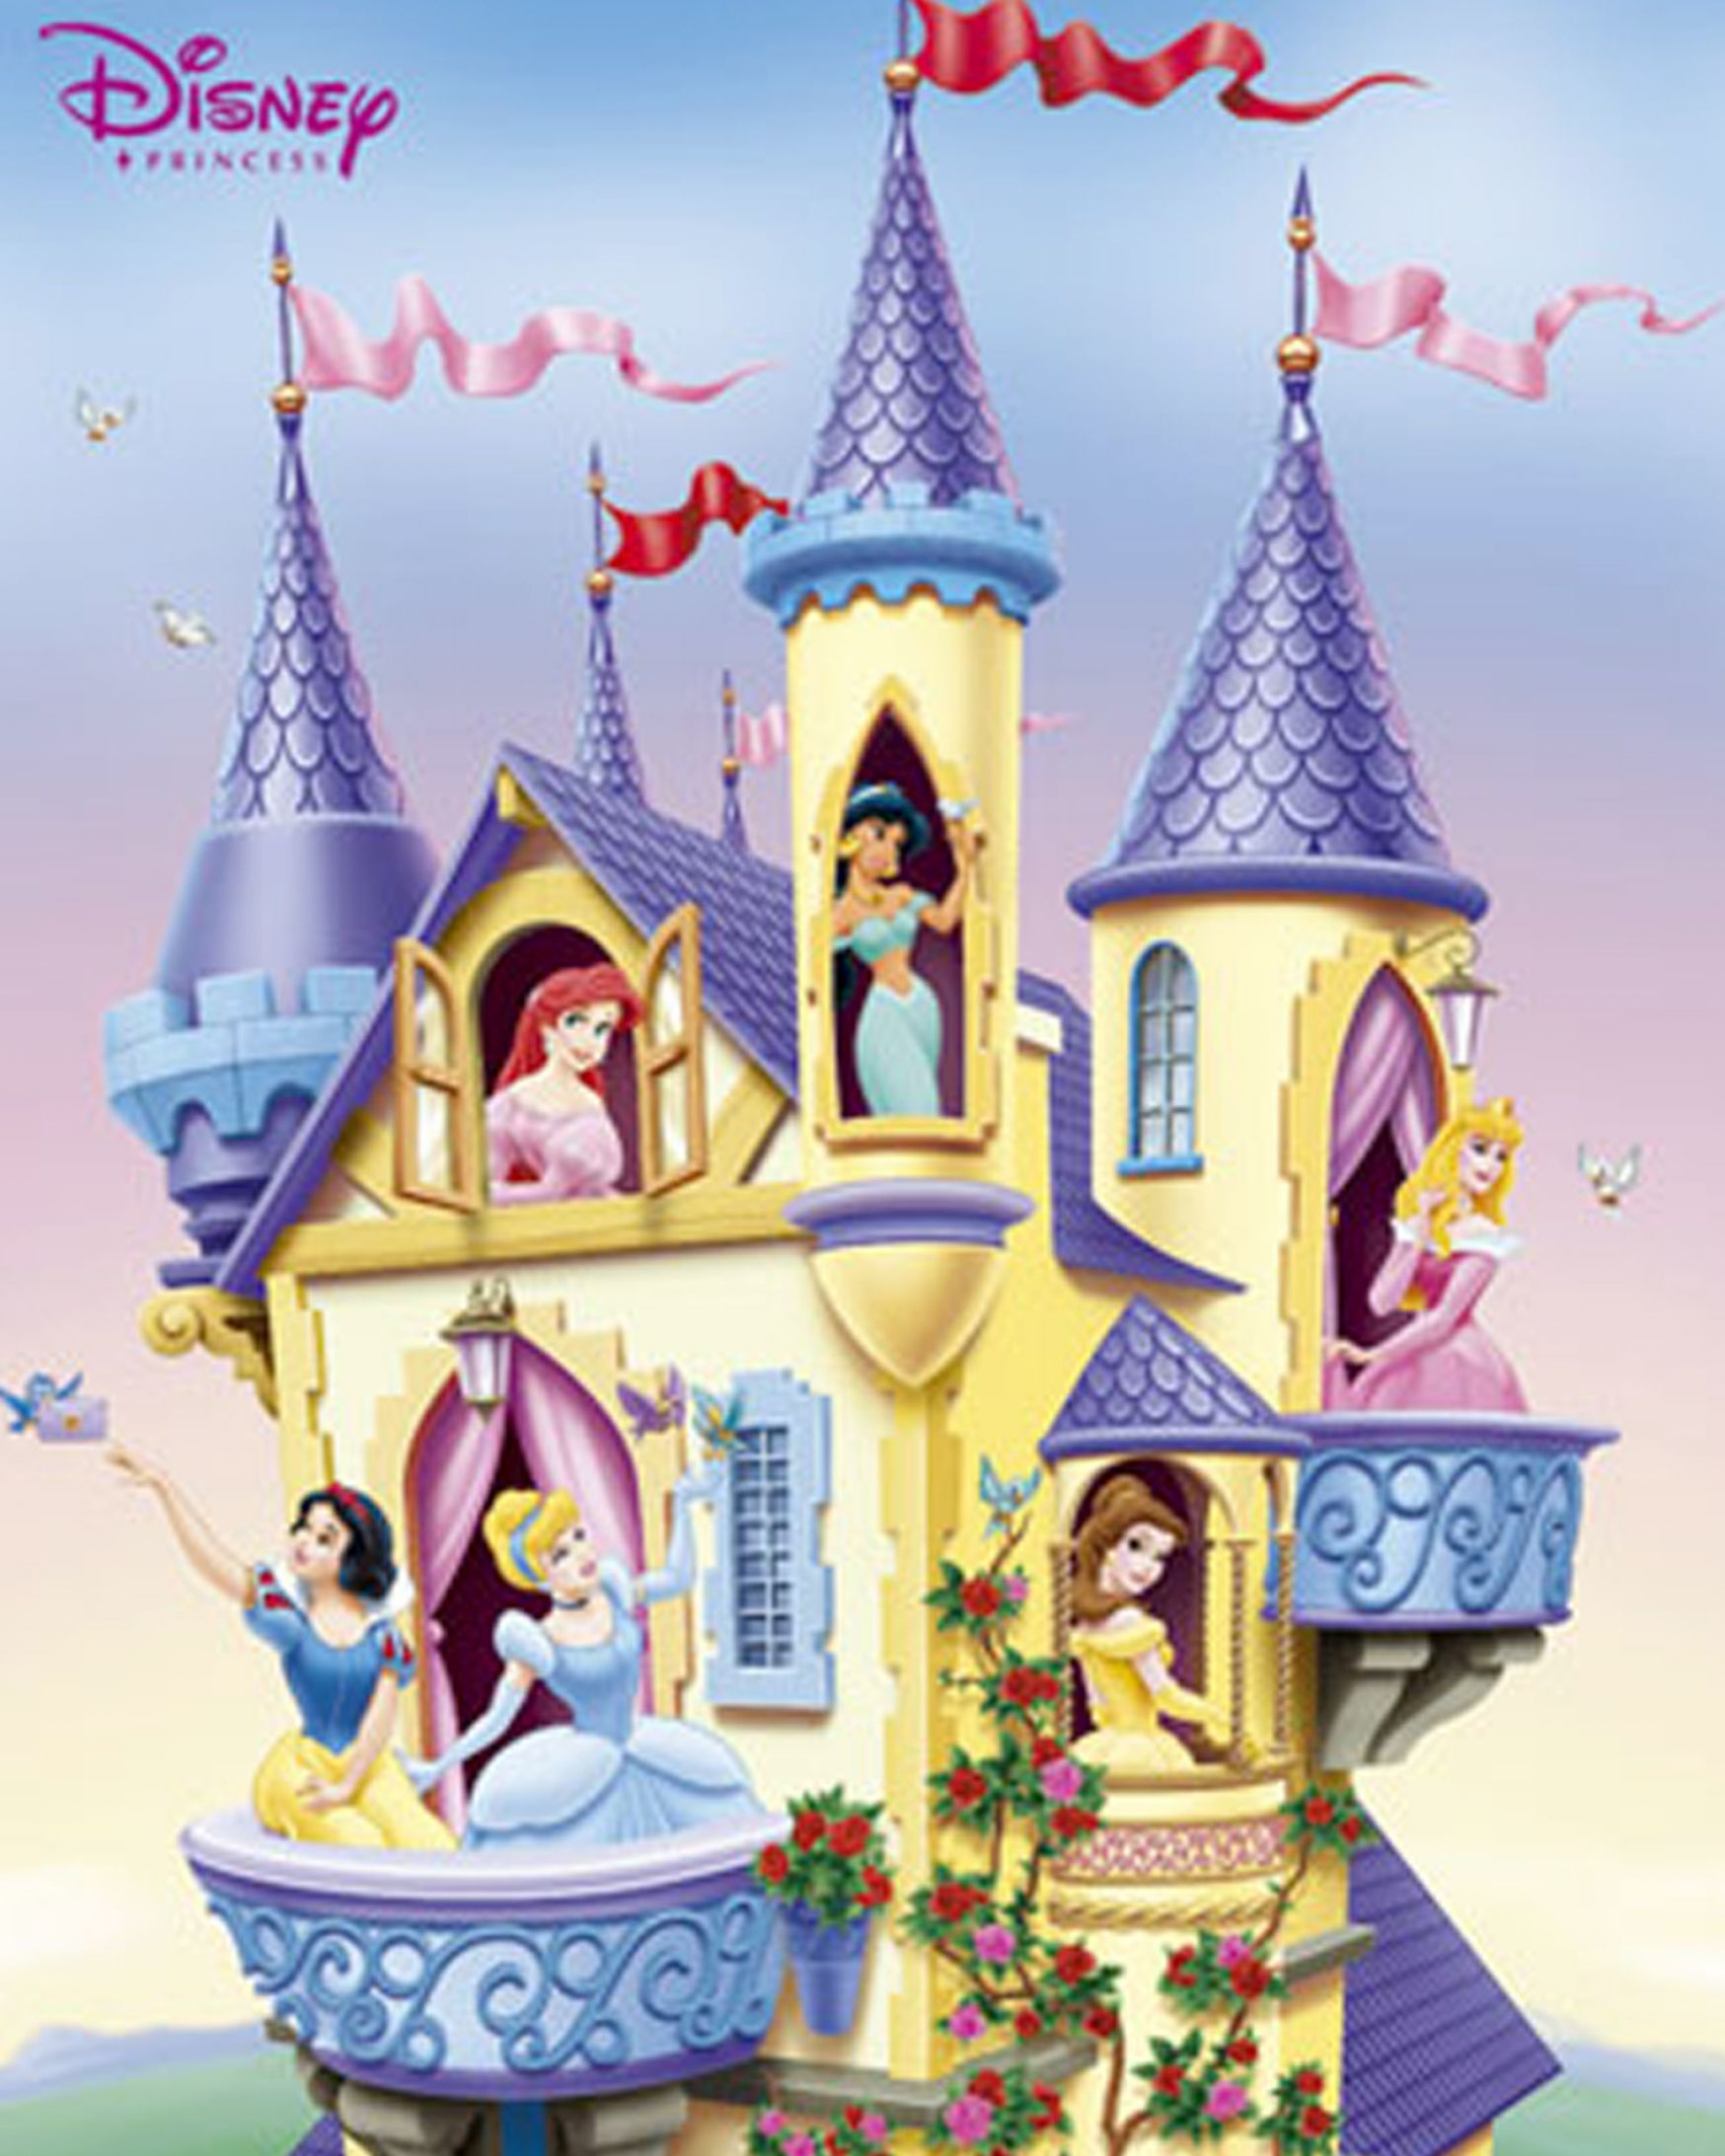 Disney princess castle background pictures 2